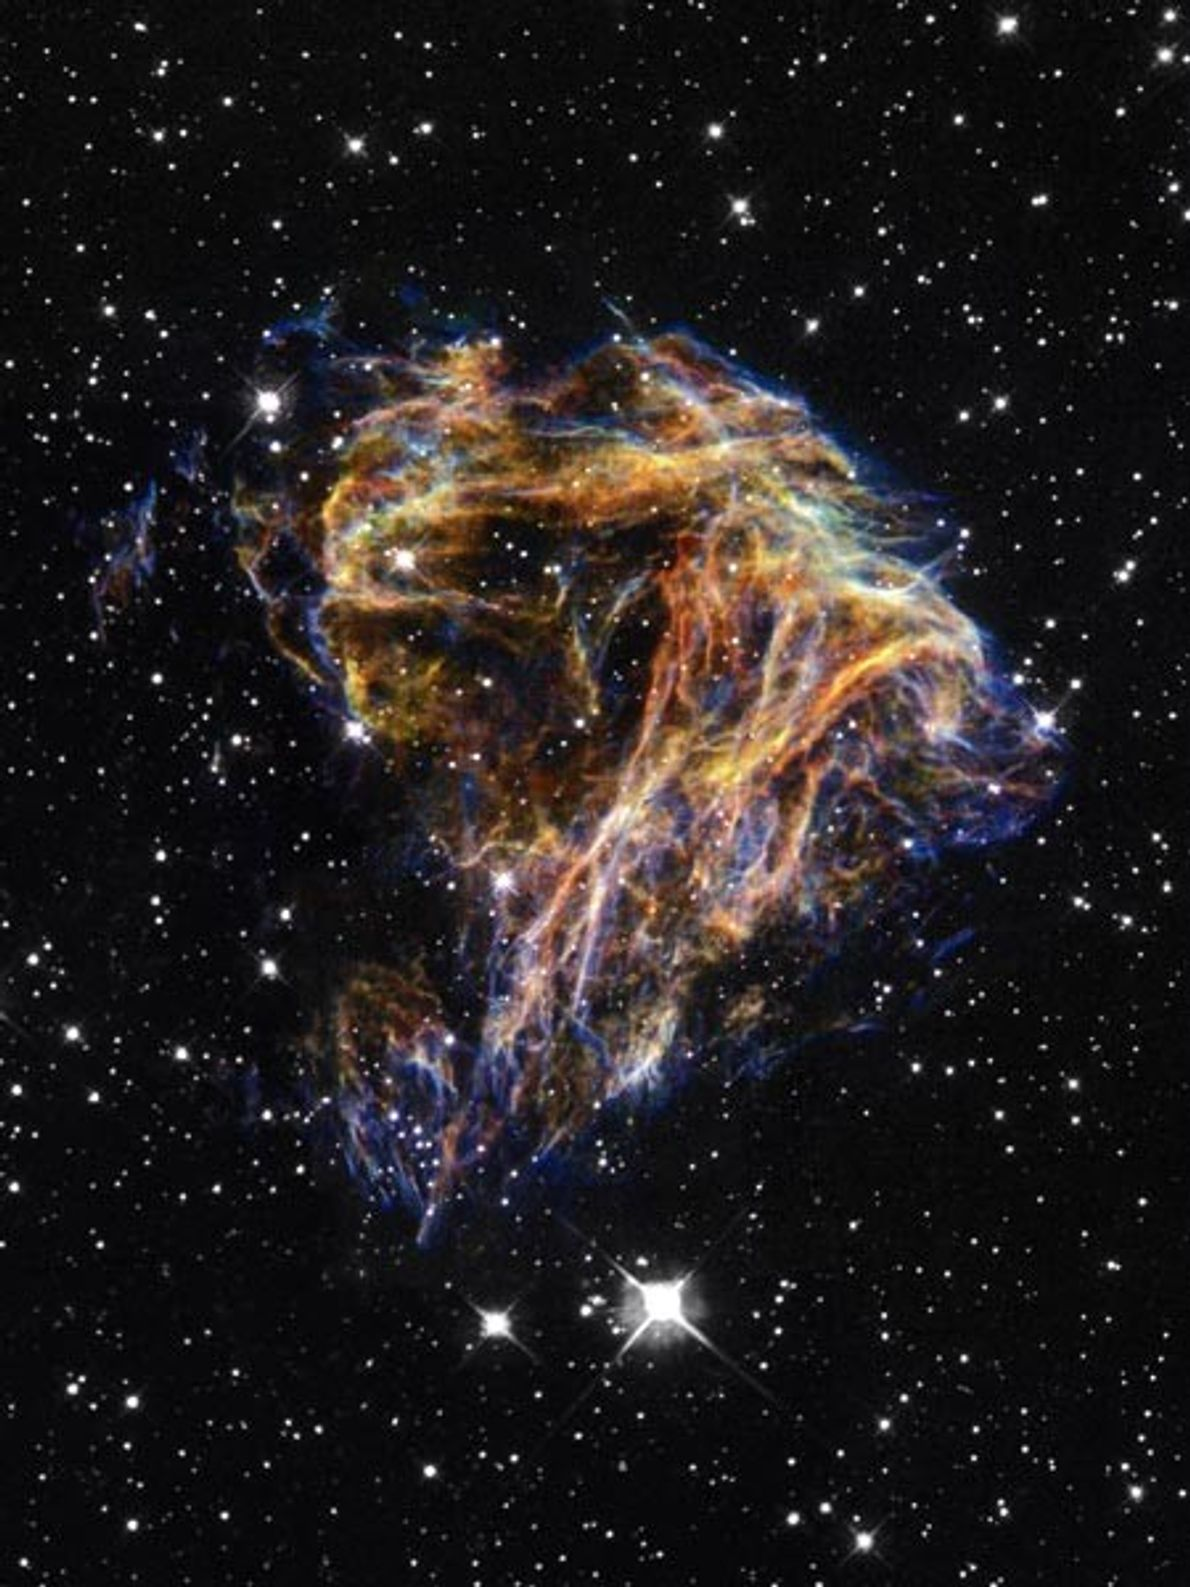 Sheets of debris from an exploded star swirl in the Large Magellanic Cloud (LMC) galaxy in ...